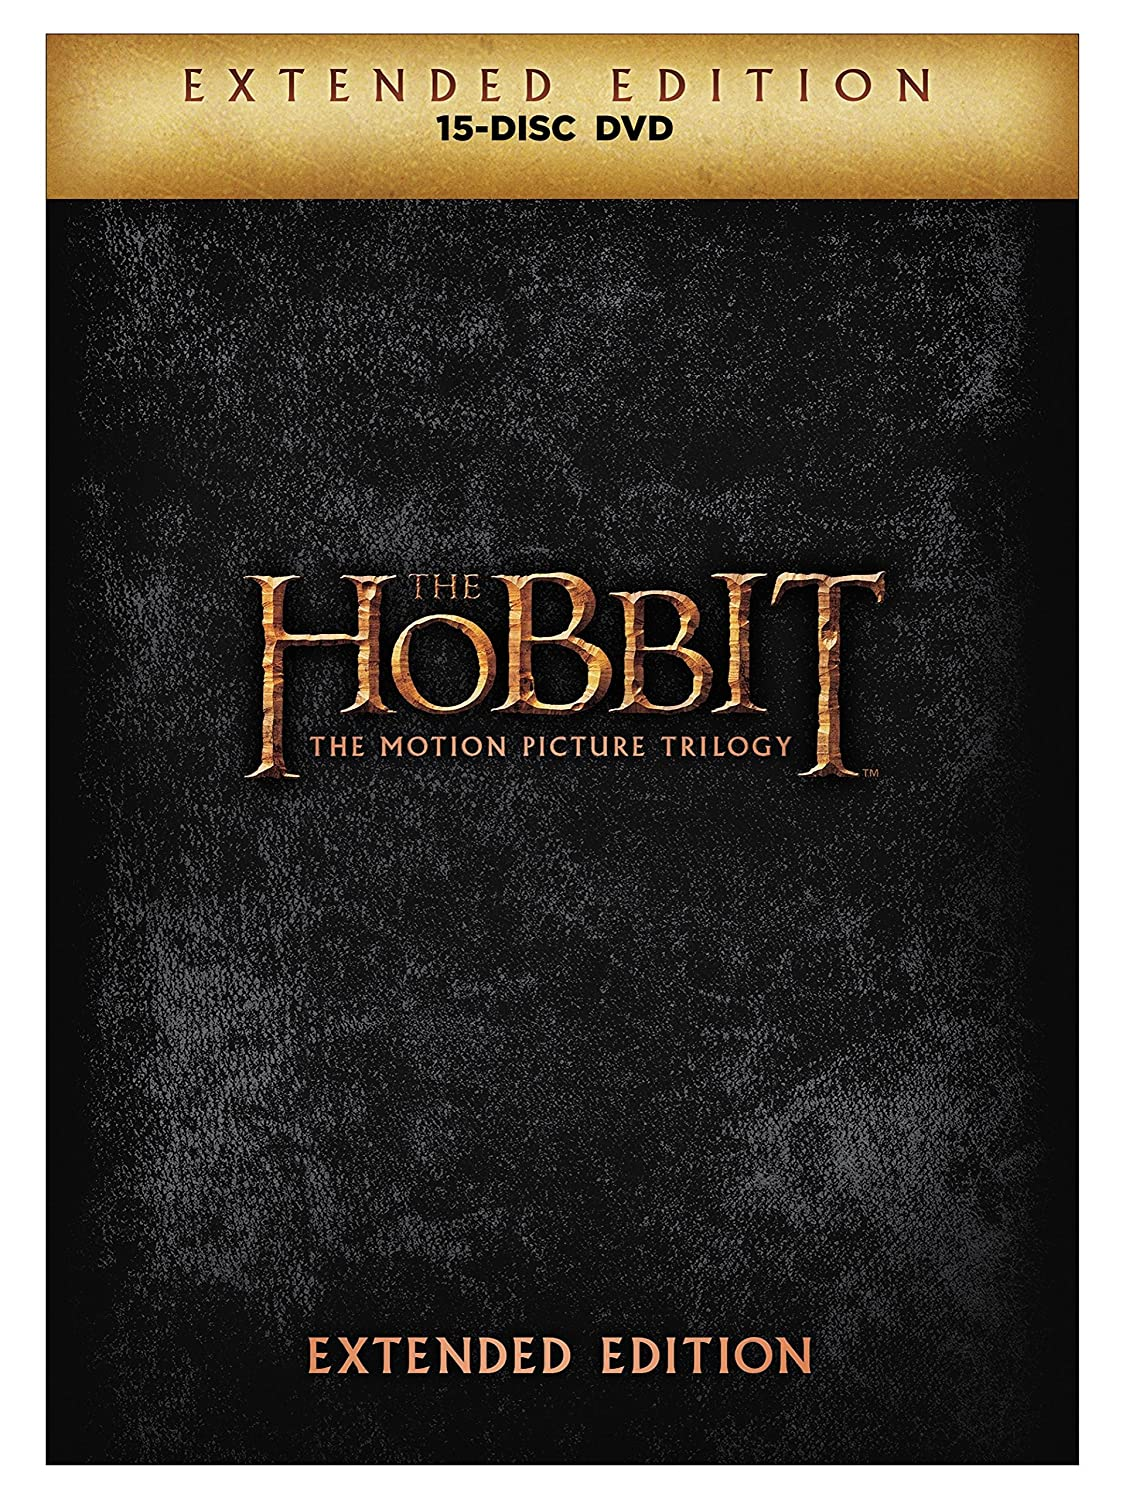 The Hobbit: (Extended Edition/Trilogy DVD)